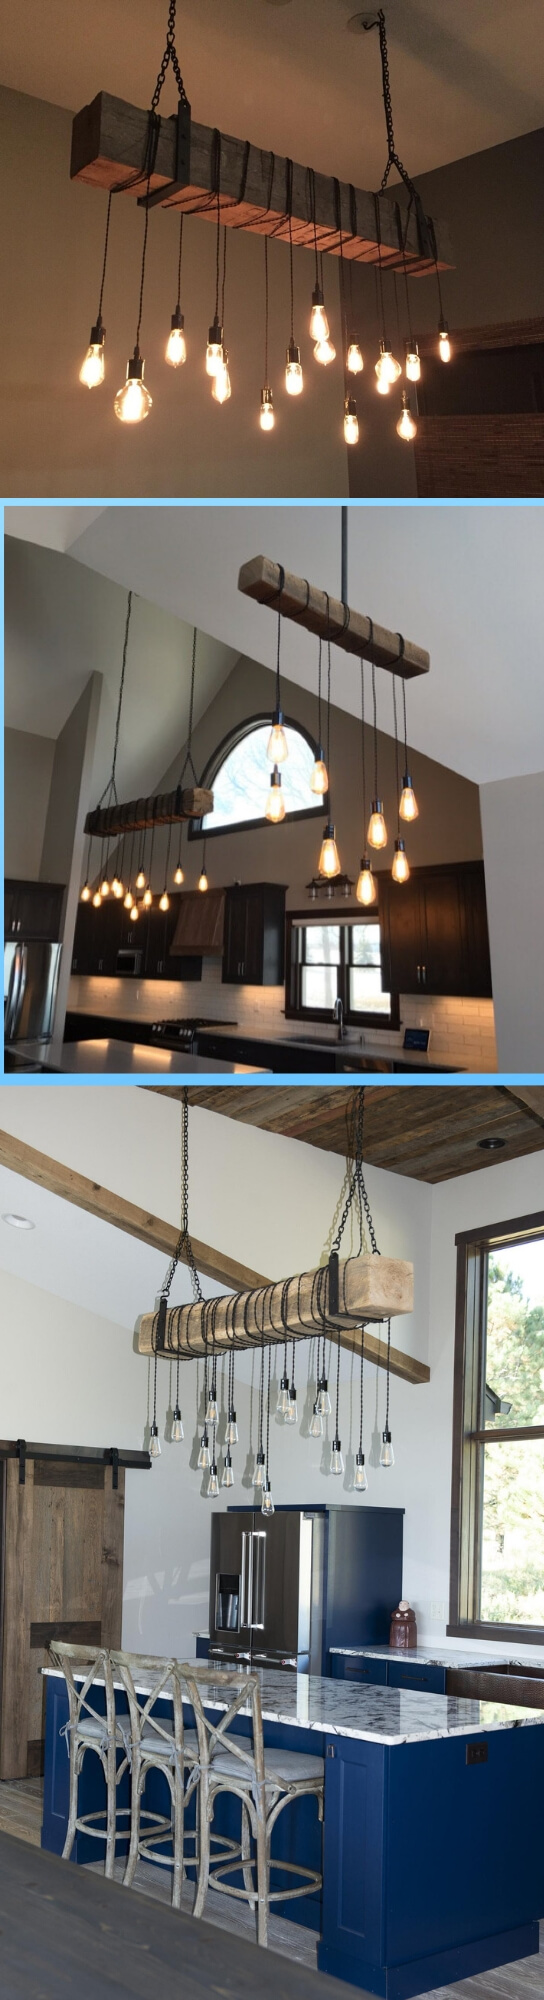 Farmhouse Lighting Designs & Ideas: Industrial Farmhouse Lighting: Barn Beam Light Fixture w/ metal brackets